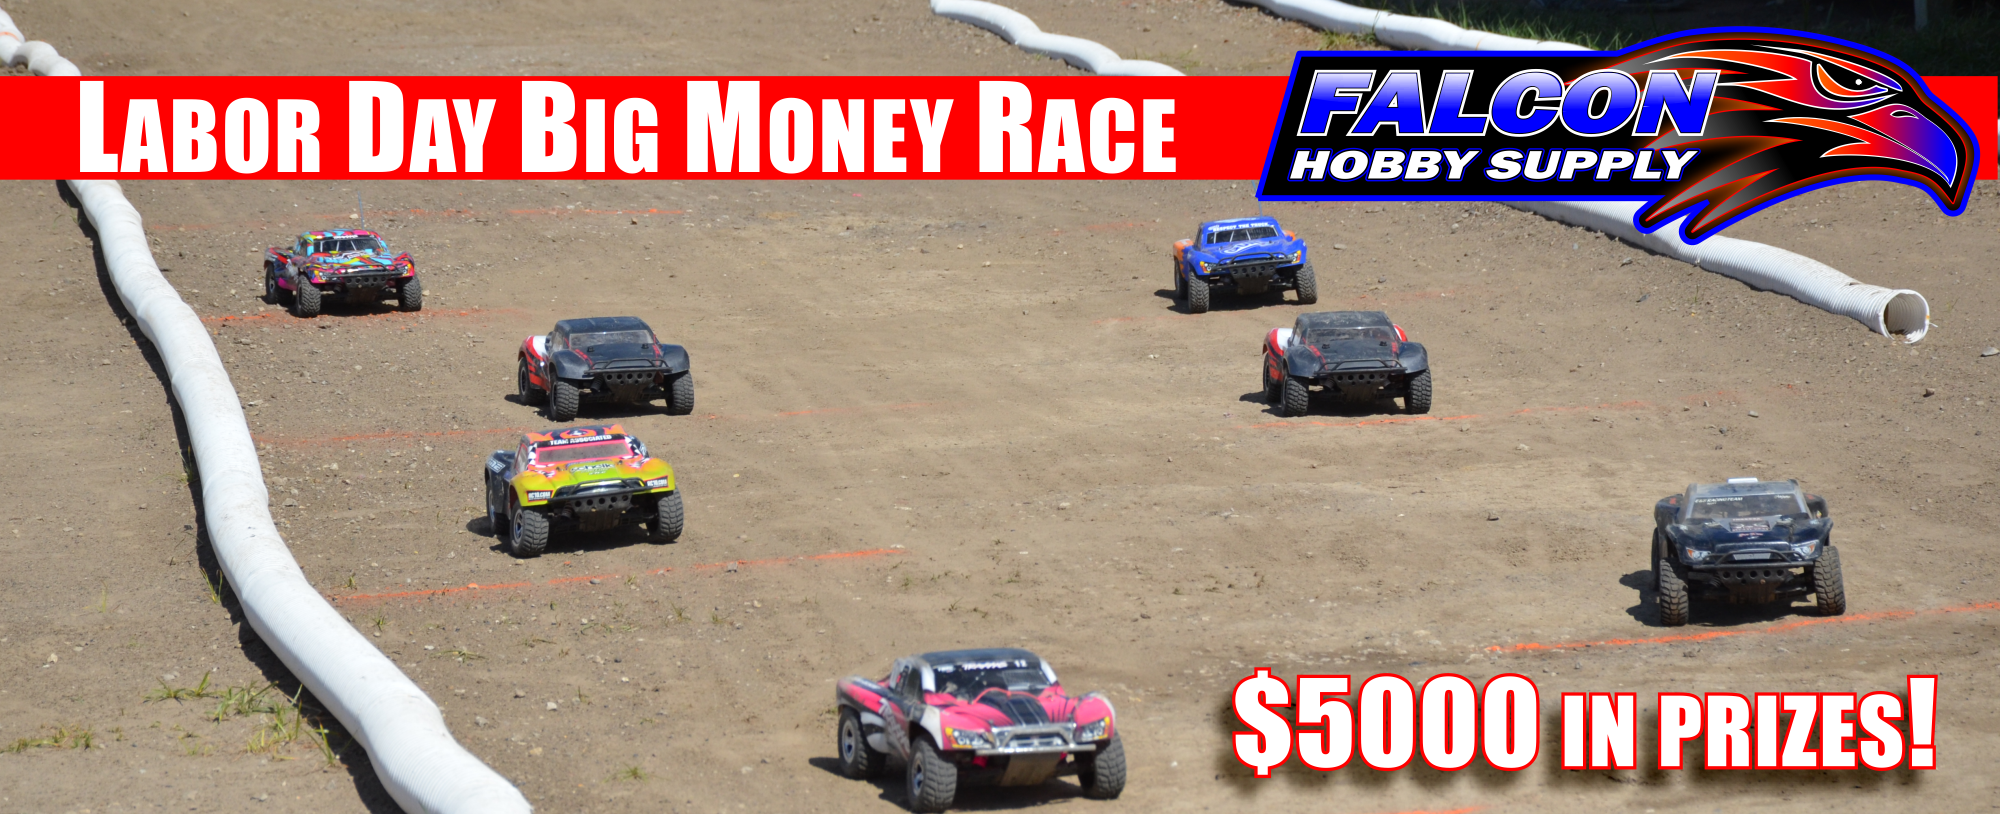 Falcon Hobby Supply Big Money Off Road Race